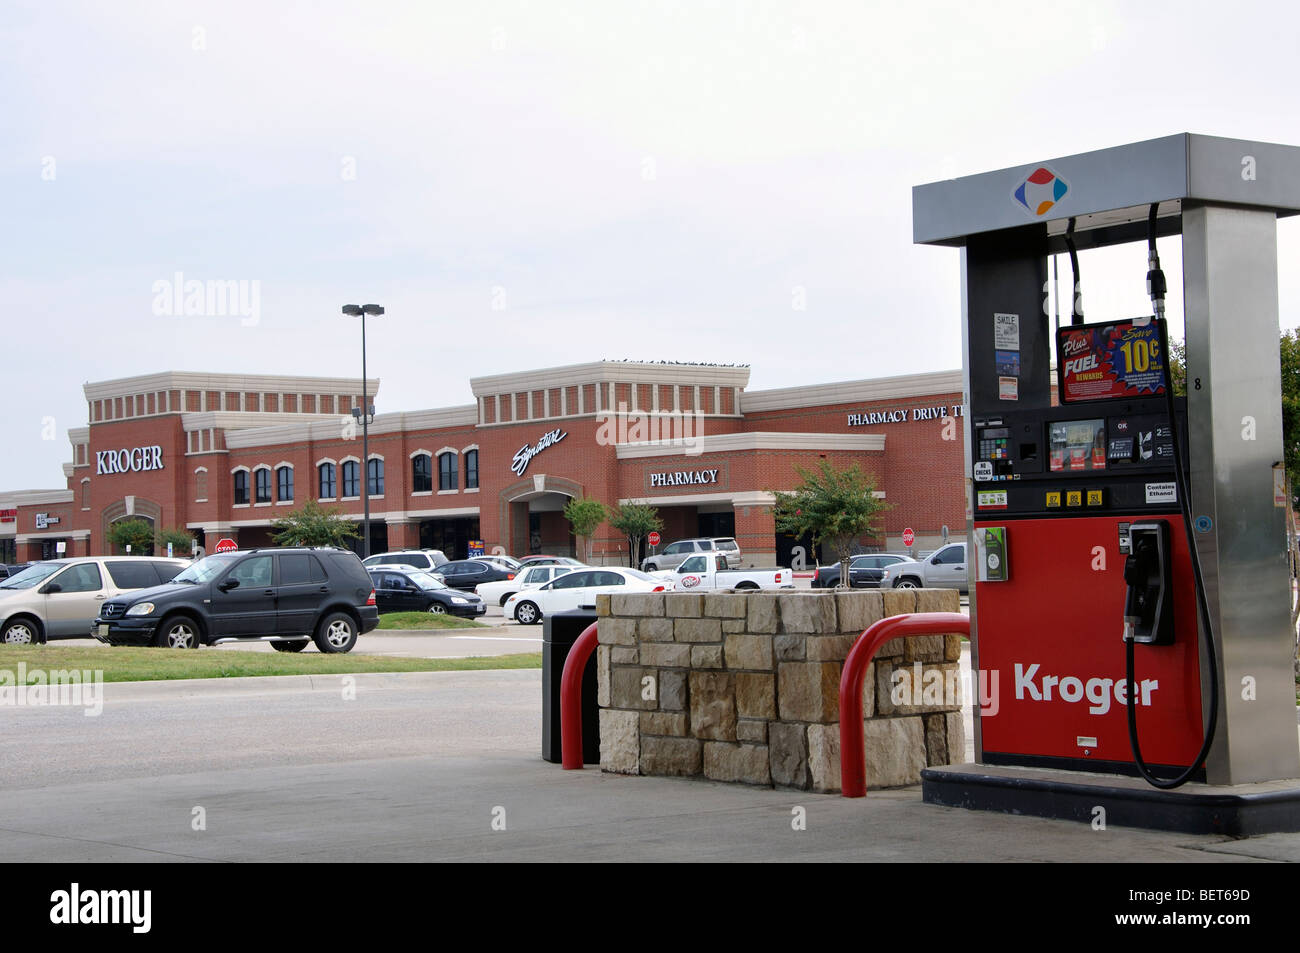 kroger supermarket and gas station in frisco texas stock photo royalty free image 26347369. Black Bedroom Furniture Sets. Home Design Ideas